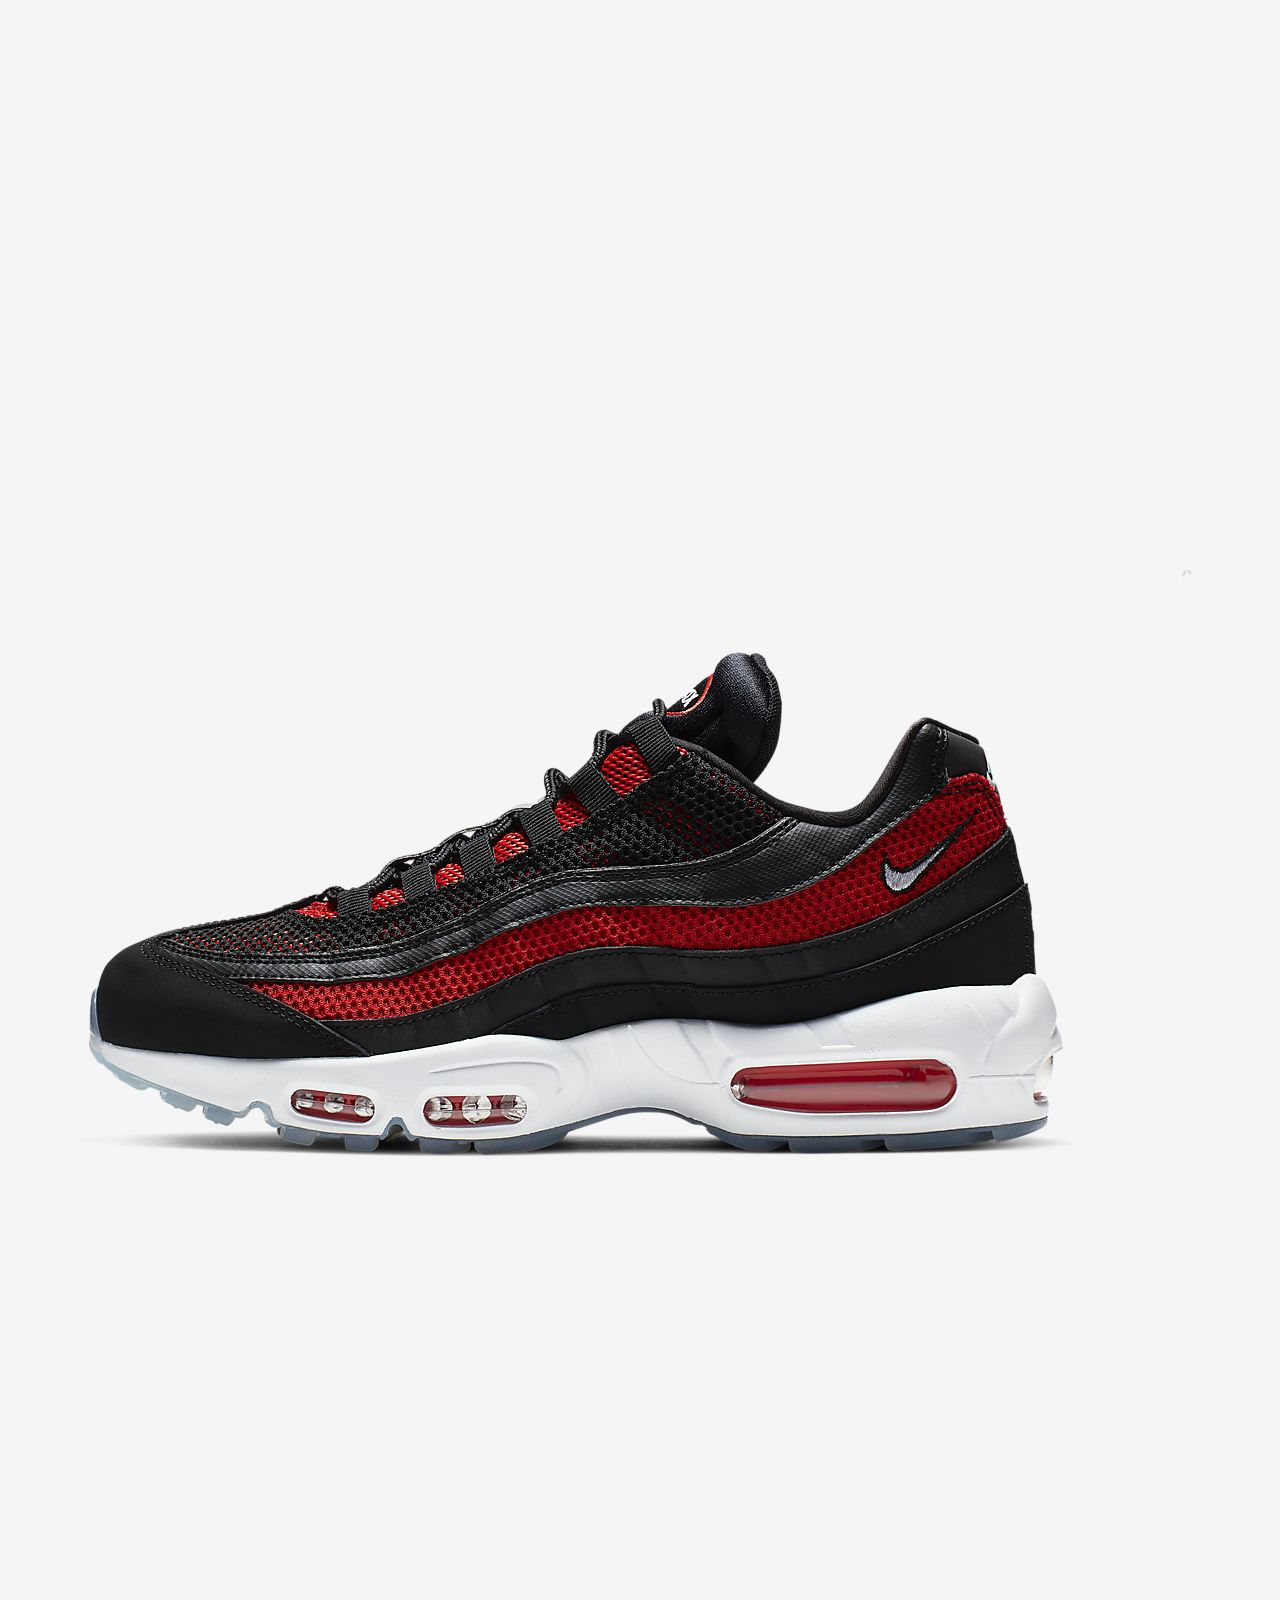 online retailer fed48 cdfe8 ... Nike Air Max 95 Essential Men s Shoe